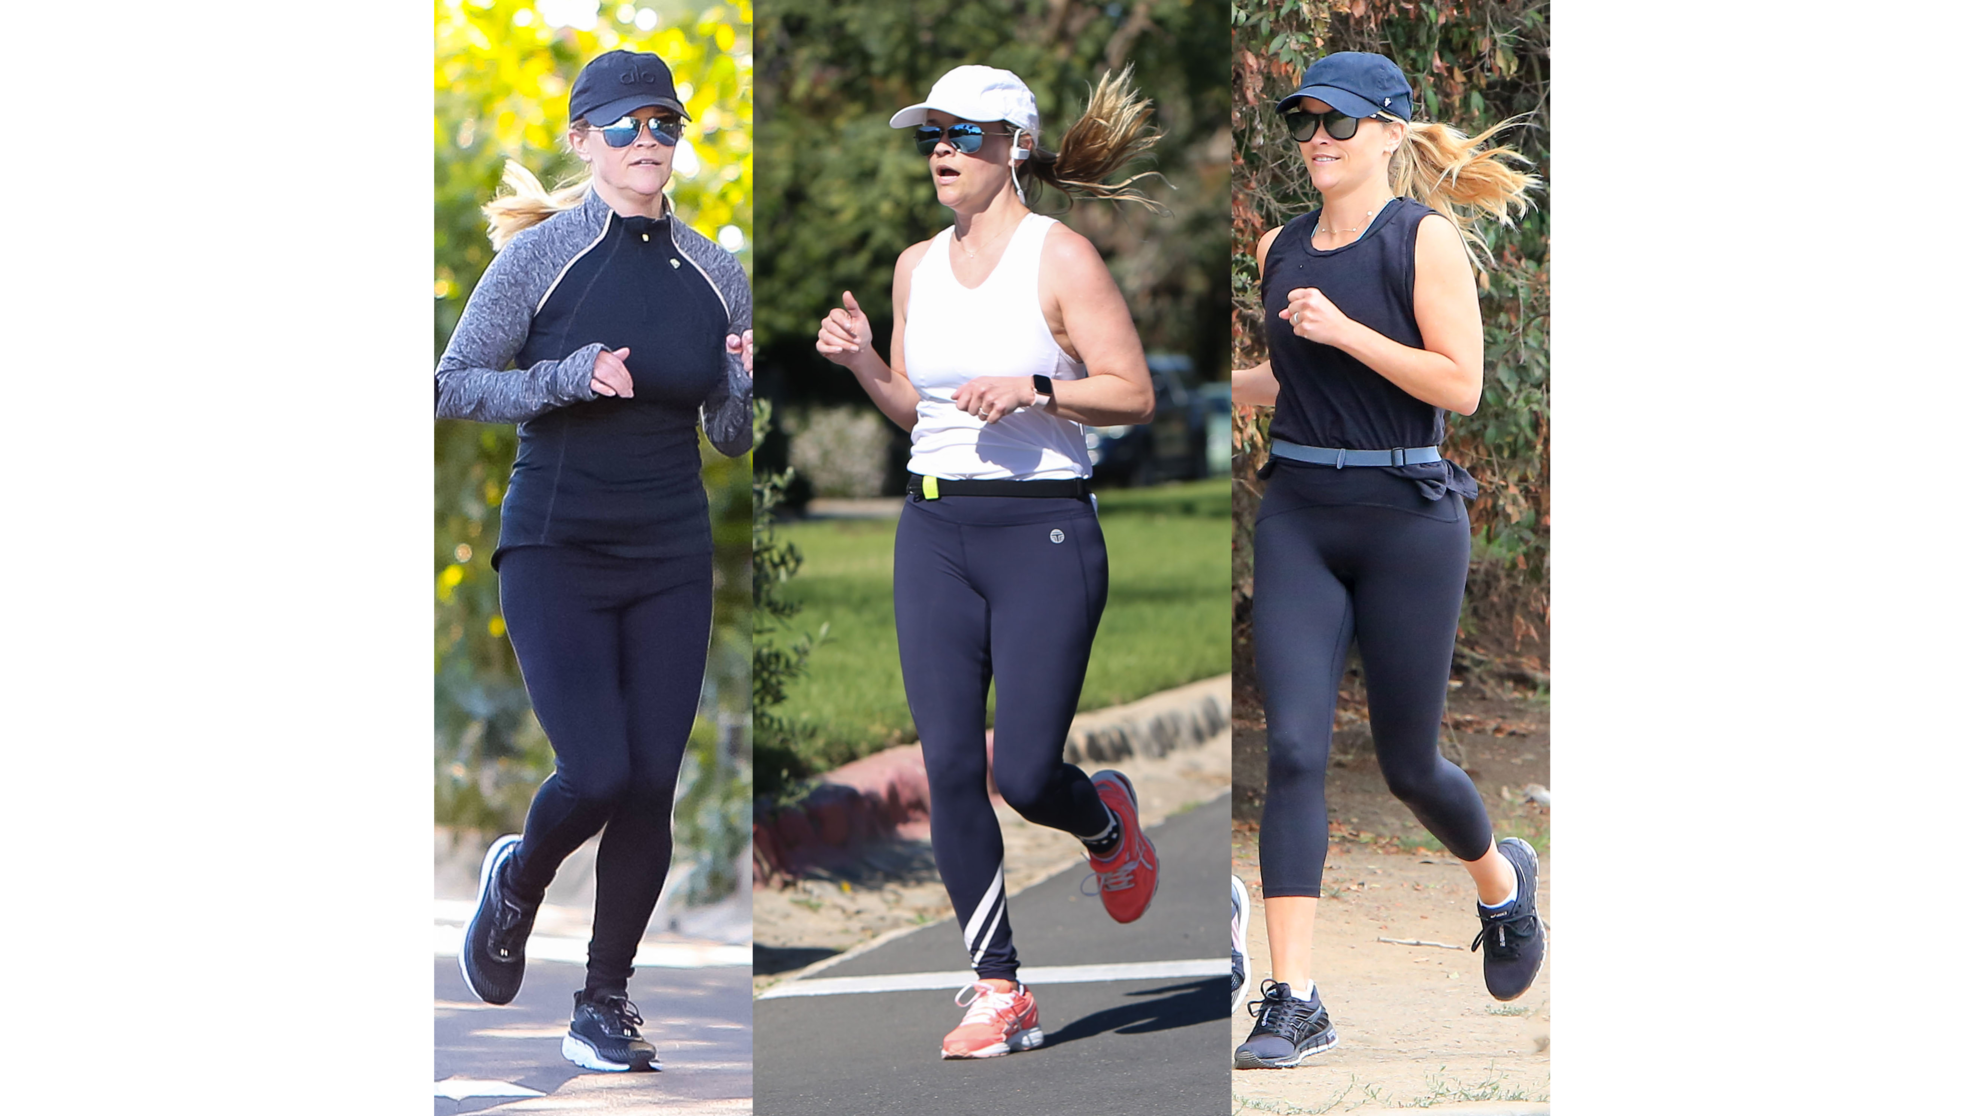 reese-witherspoon-running-asics